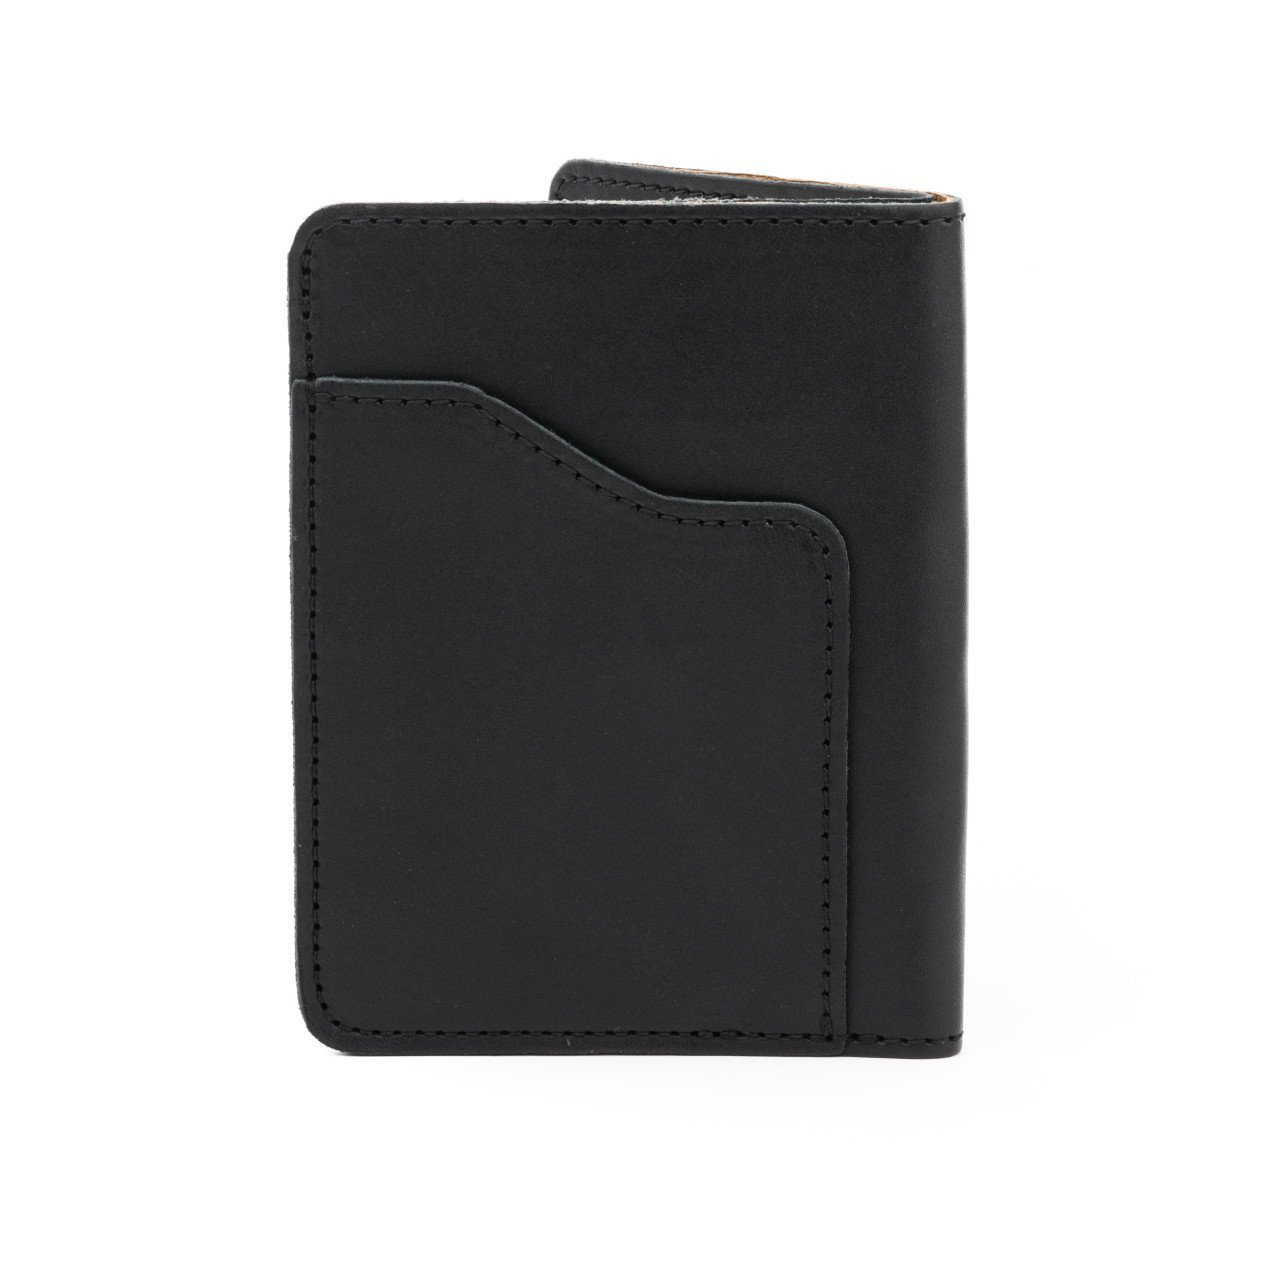 Saddleback Leather Co. RFID US Passport Holder Family Passport Wallet Includes 100 Year Warranty by Saddleback Leather Co. (Image #3)